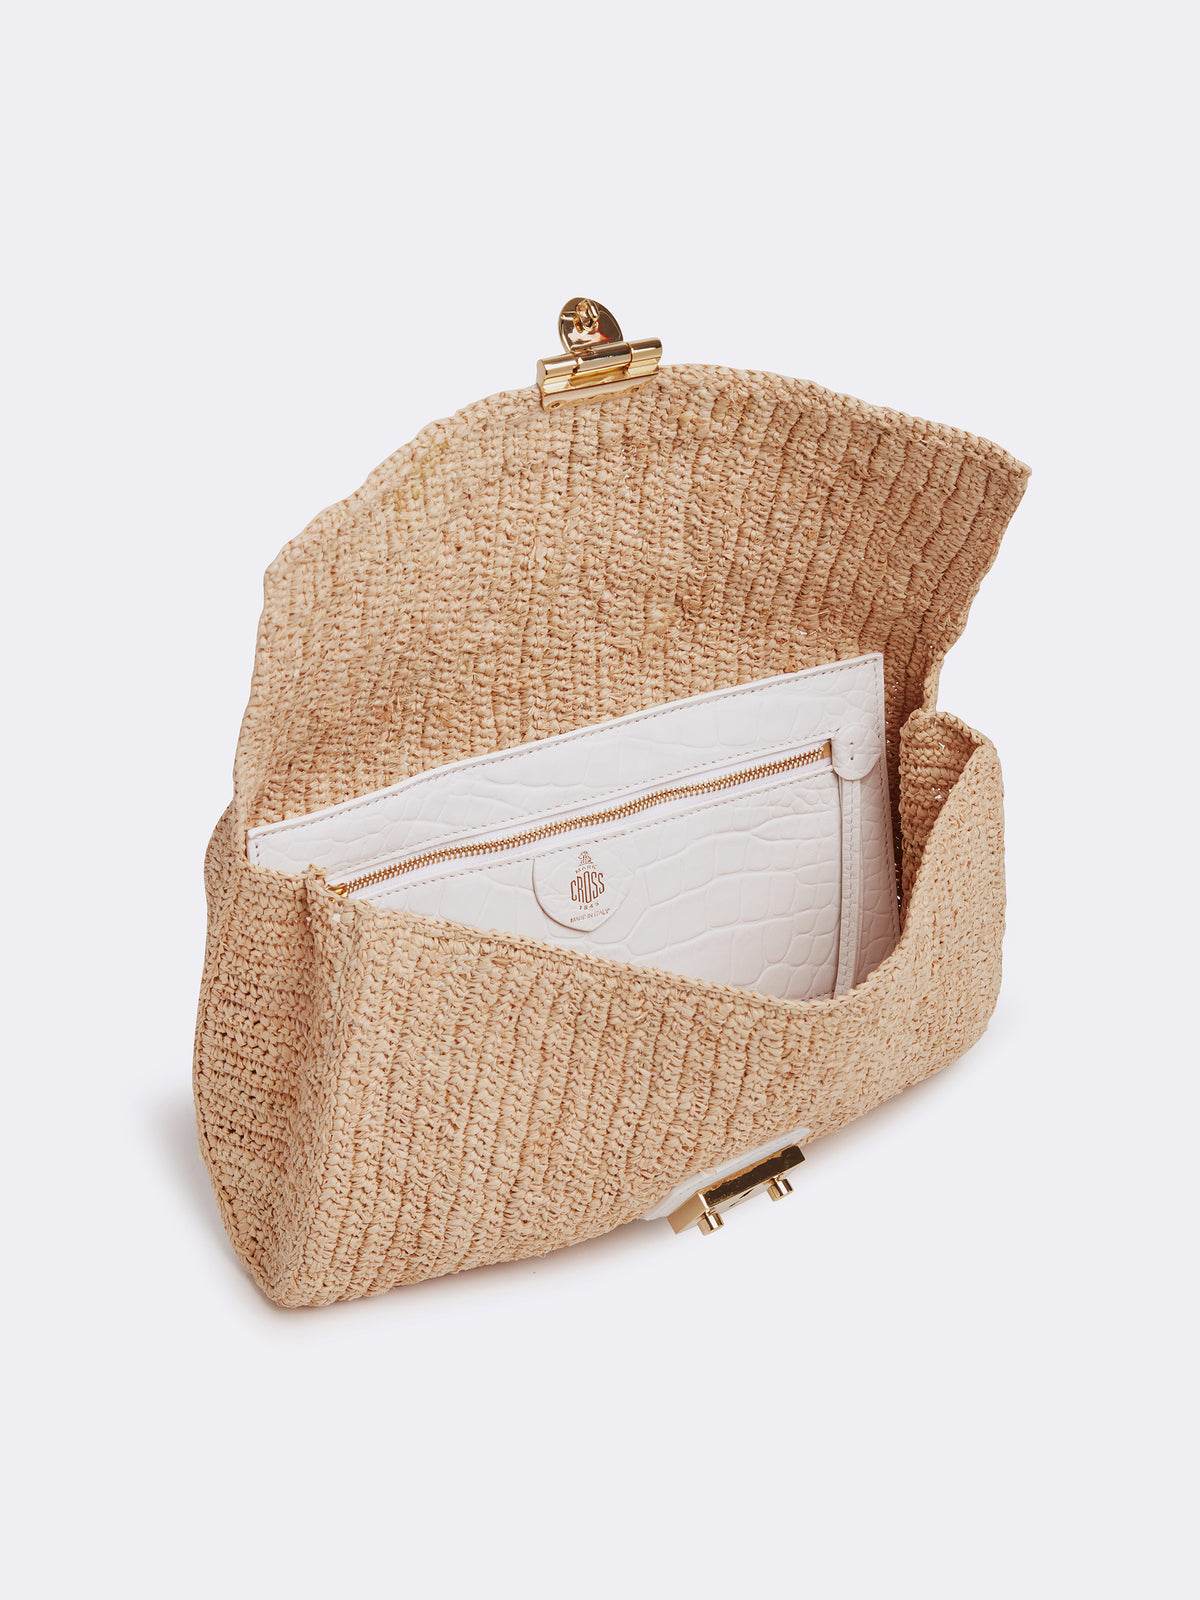 Mark Cross Sylvette Raffia & Leather Clutch Crocodile Stamped Soft Calf White / Natural Raffia Interior